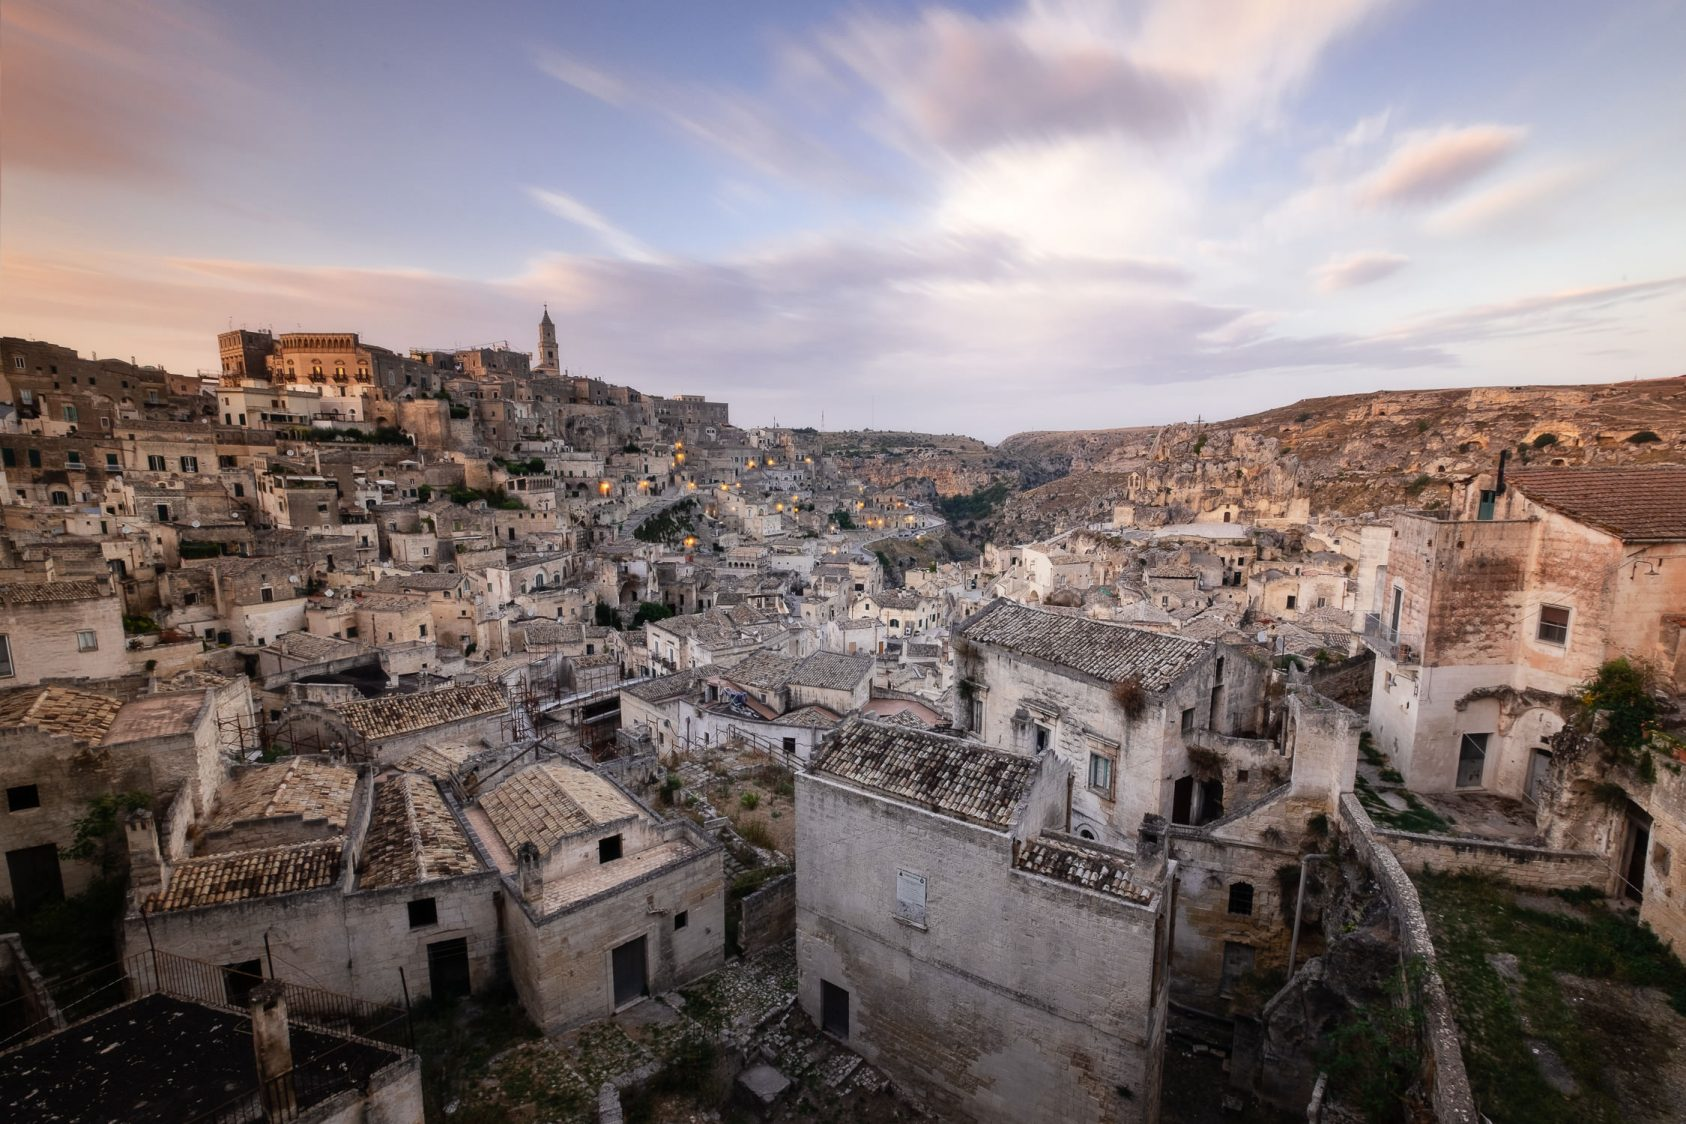 The ancient houses in the Sassi di Matera with a sunset ski overhead in Matera, Italy.